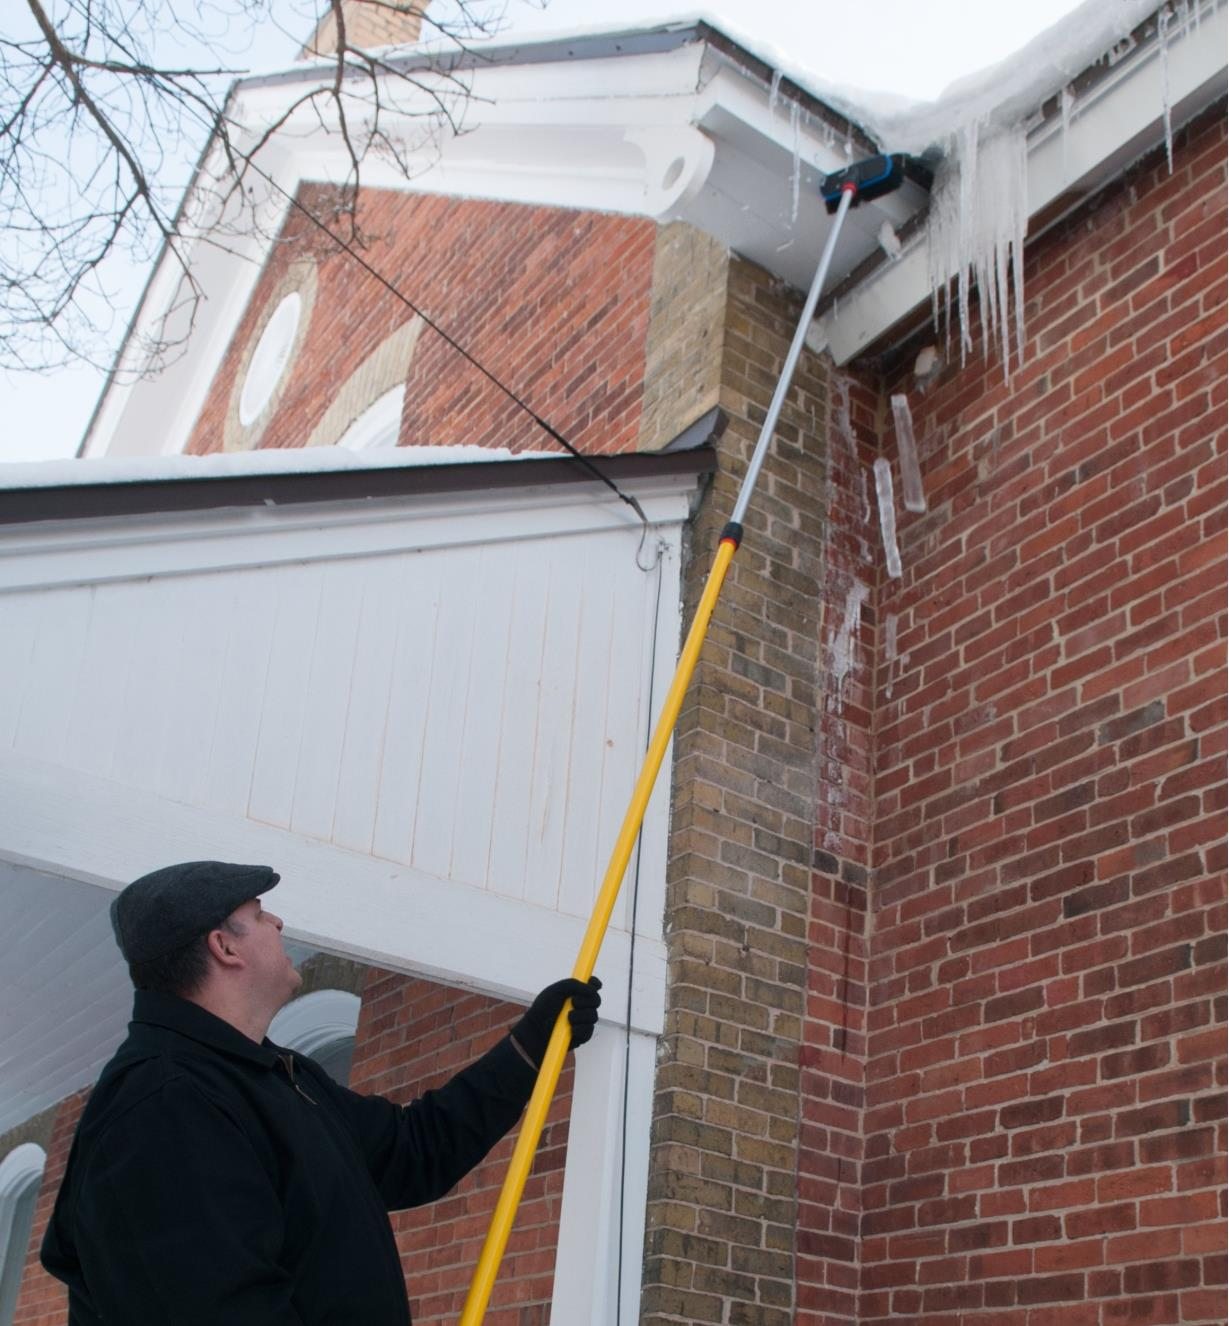 Using the 8' to 22 1/2' Extension Pole and a brush to clear icicles from eaves on a house